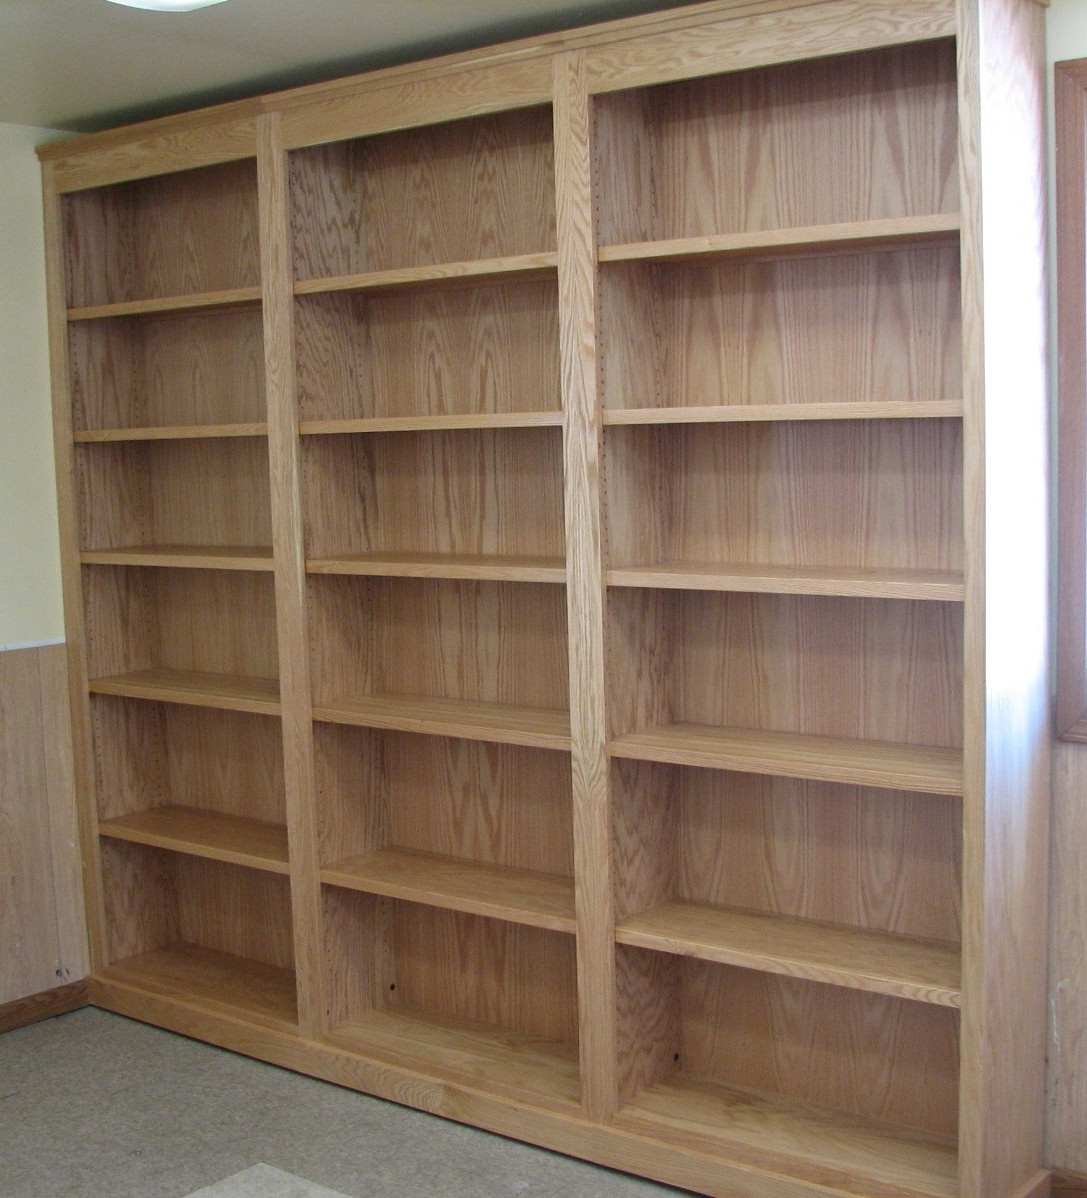 Preferred Backyards : Bookcase Buying Guide Raad Studio Library Quality For High Quality Bookcases (View 2 of 15)